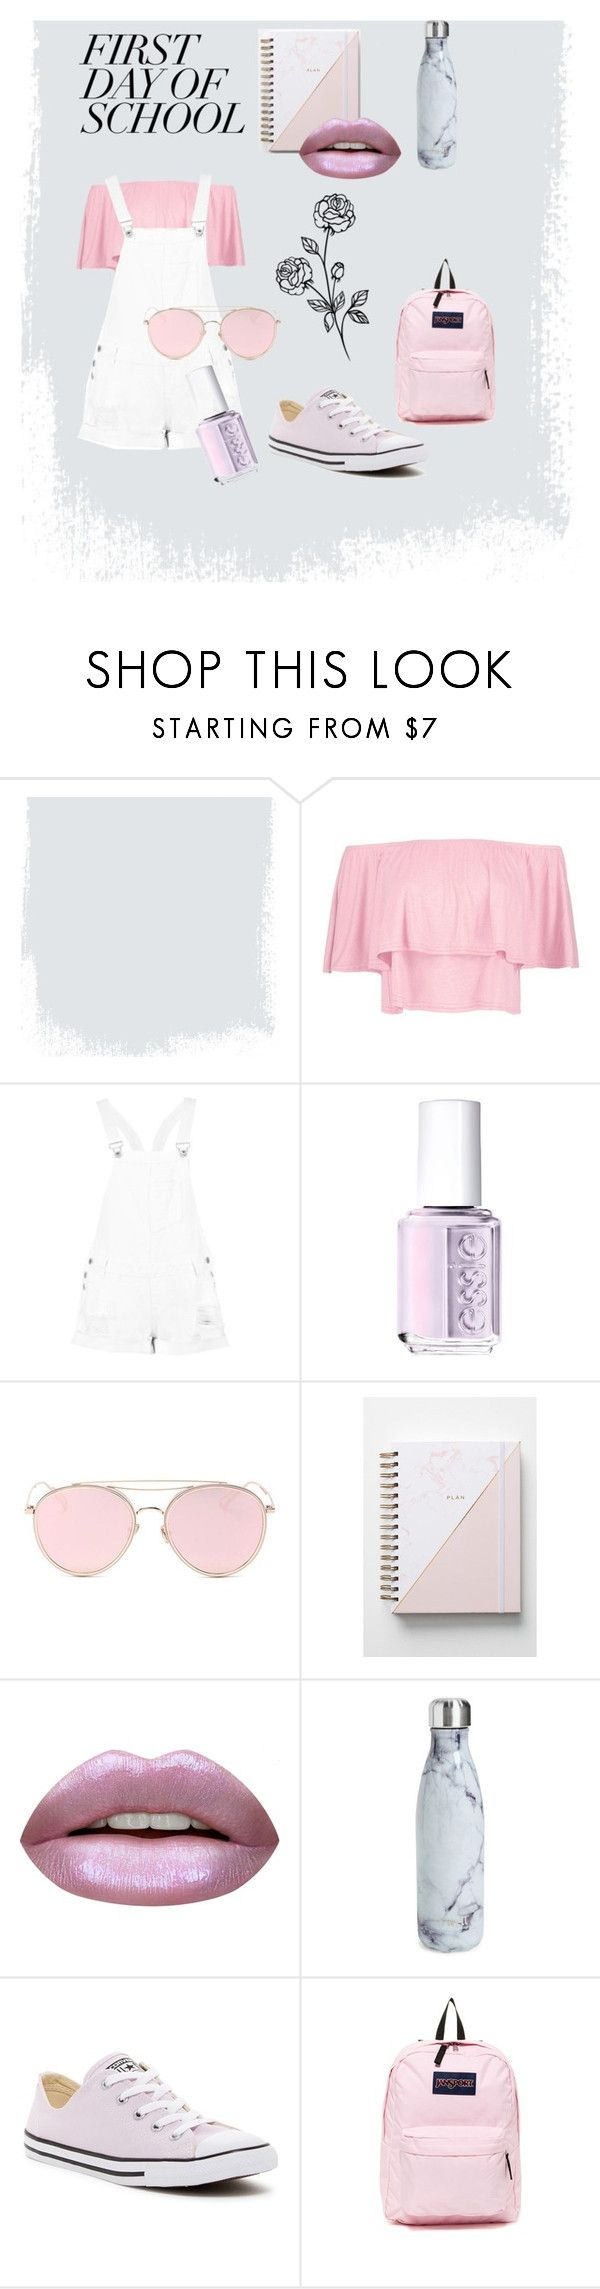 """Untitled #16"" by darya-andreea ❤ liked on Polyvore featuring Boohoo, Essie, LMNT, Hadron Epoch, Huda Beauty, S'well, Converse and JanSport"